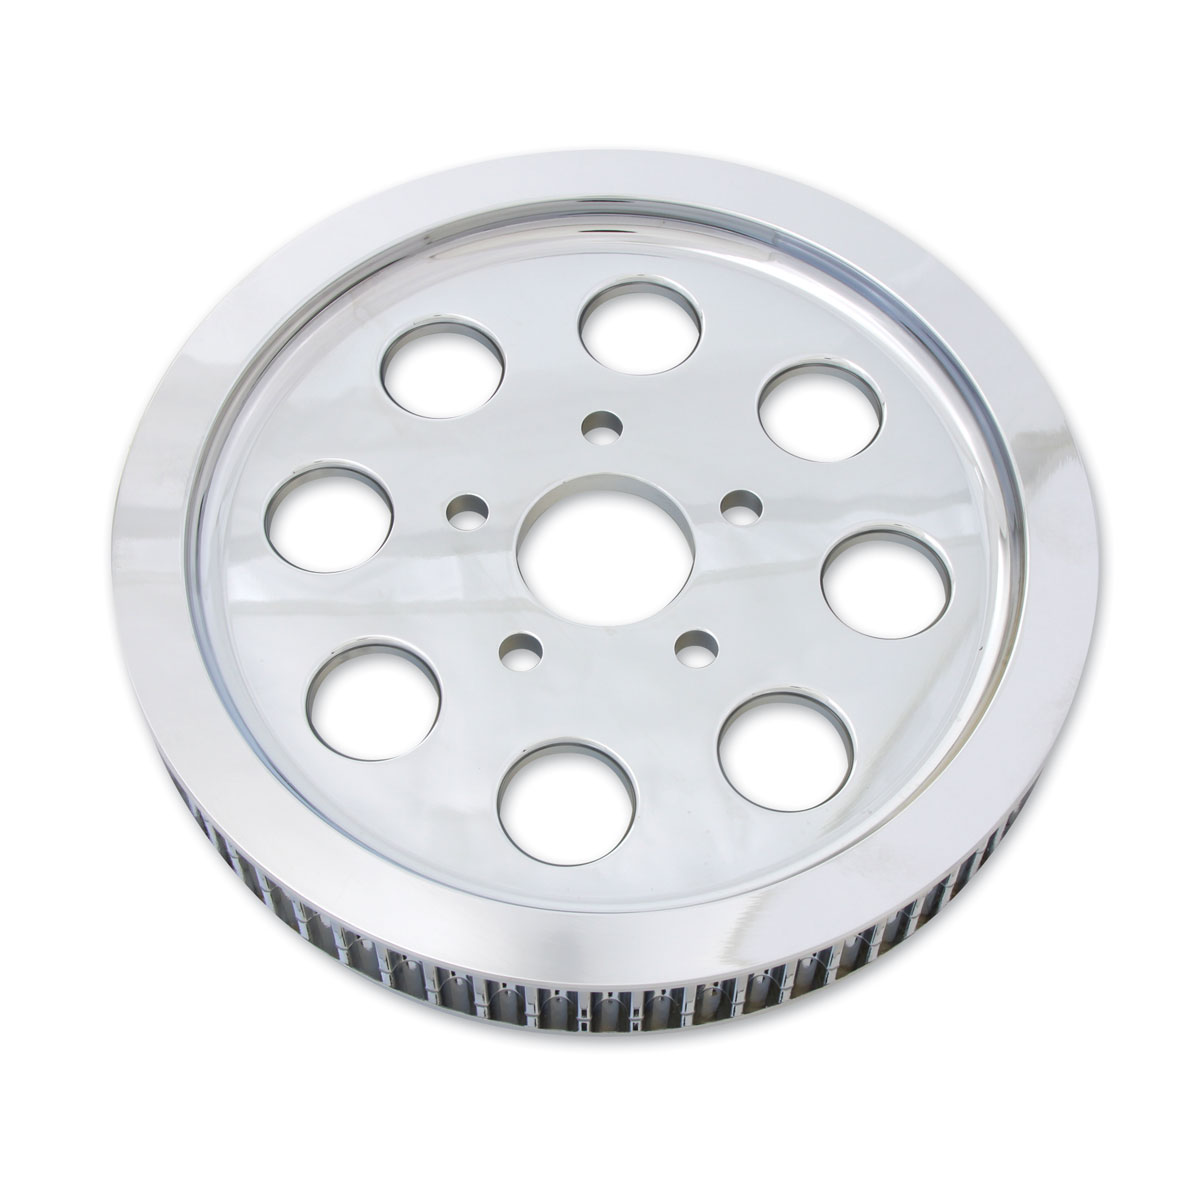 Rear Pulley Cover 61 Tooth Chrome fits Harley-Davidson